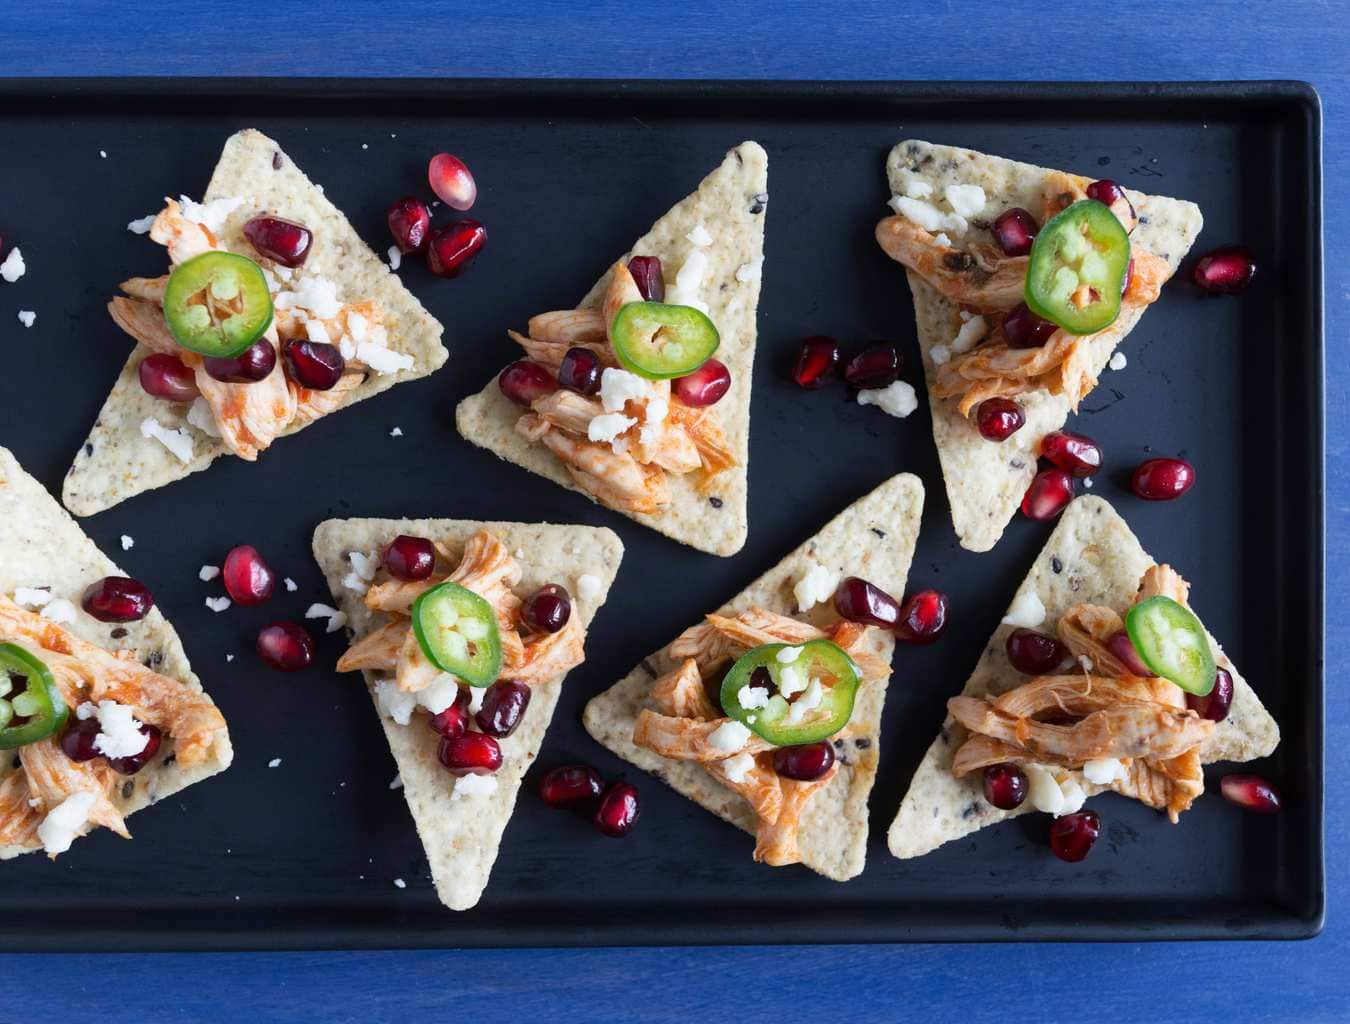 Instant Pot chipotle pomegranate taco bites on slate and blue